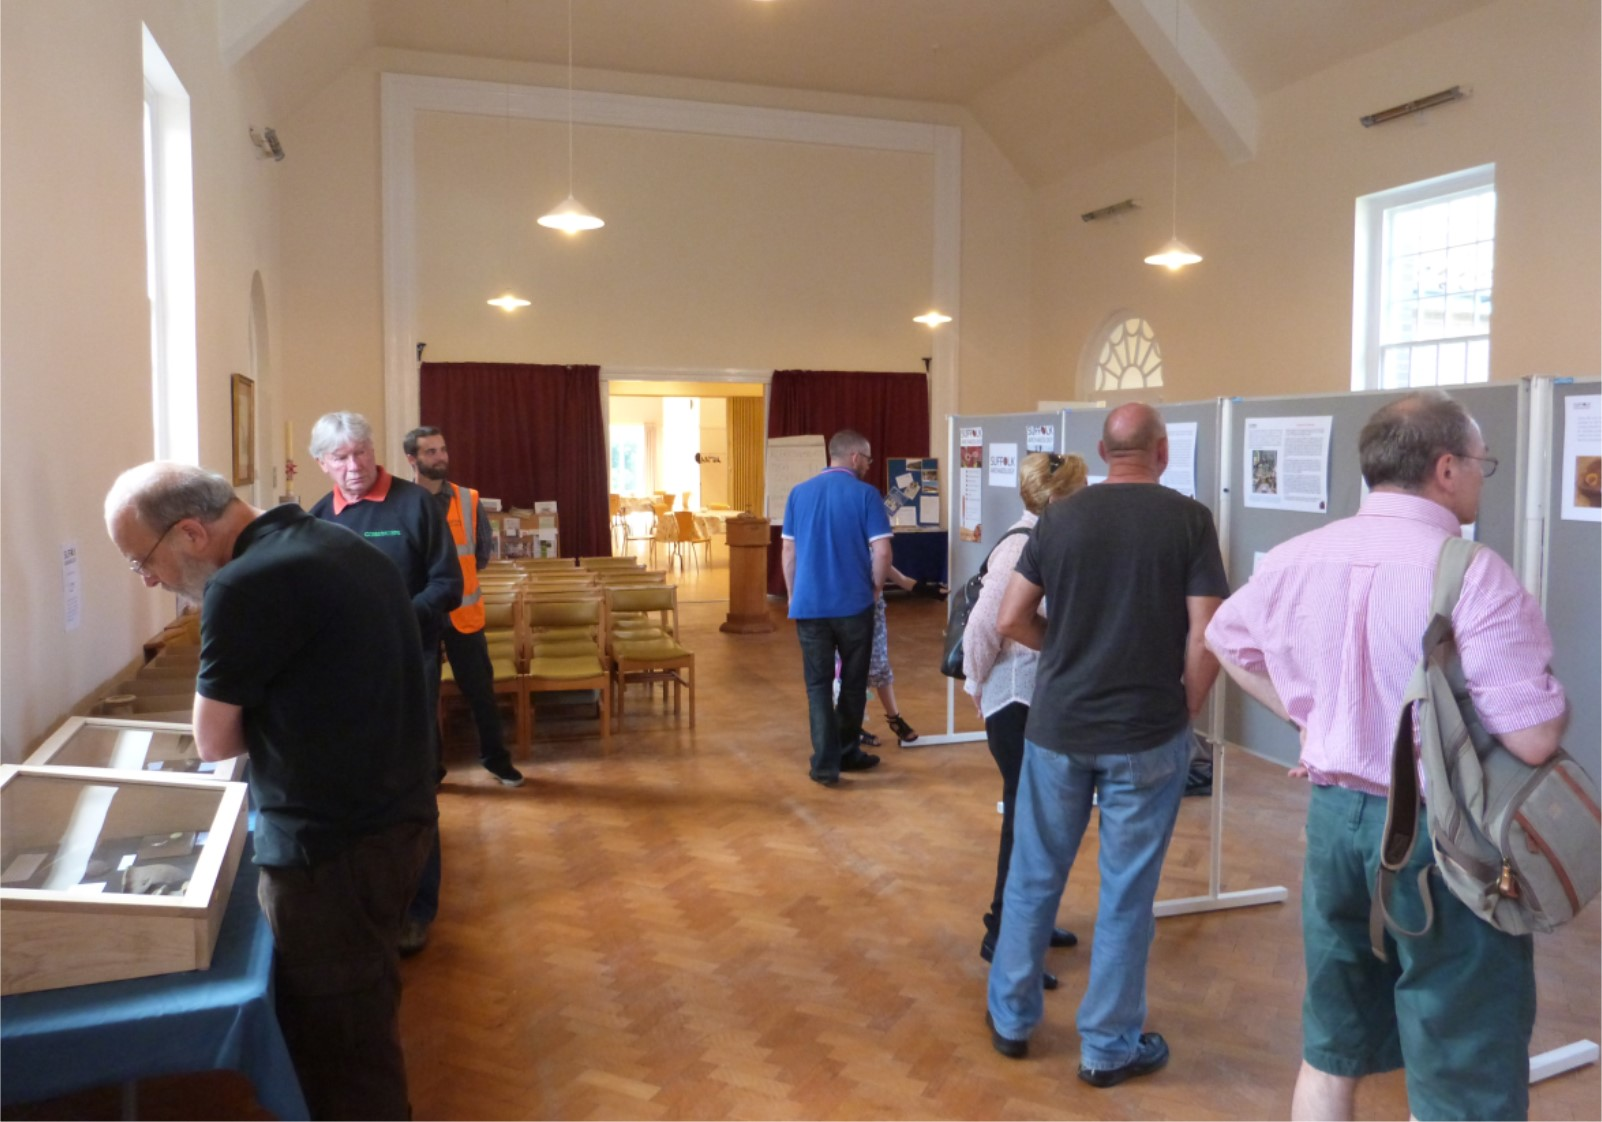 Visitors to the display at St Georges Church, Bury St Edmunds